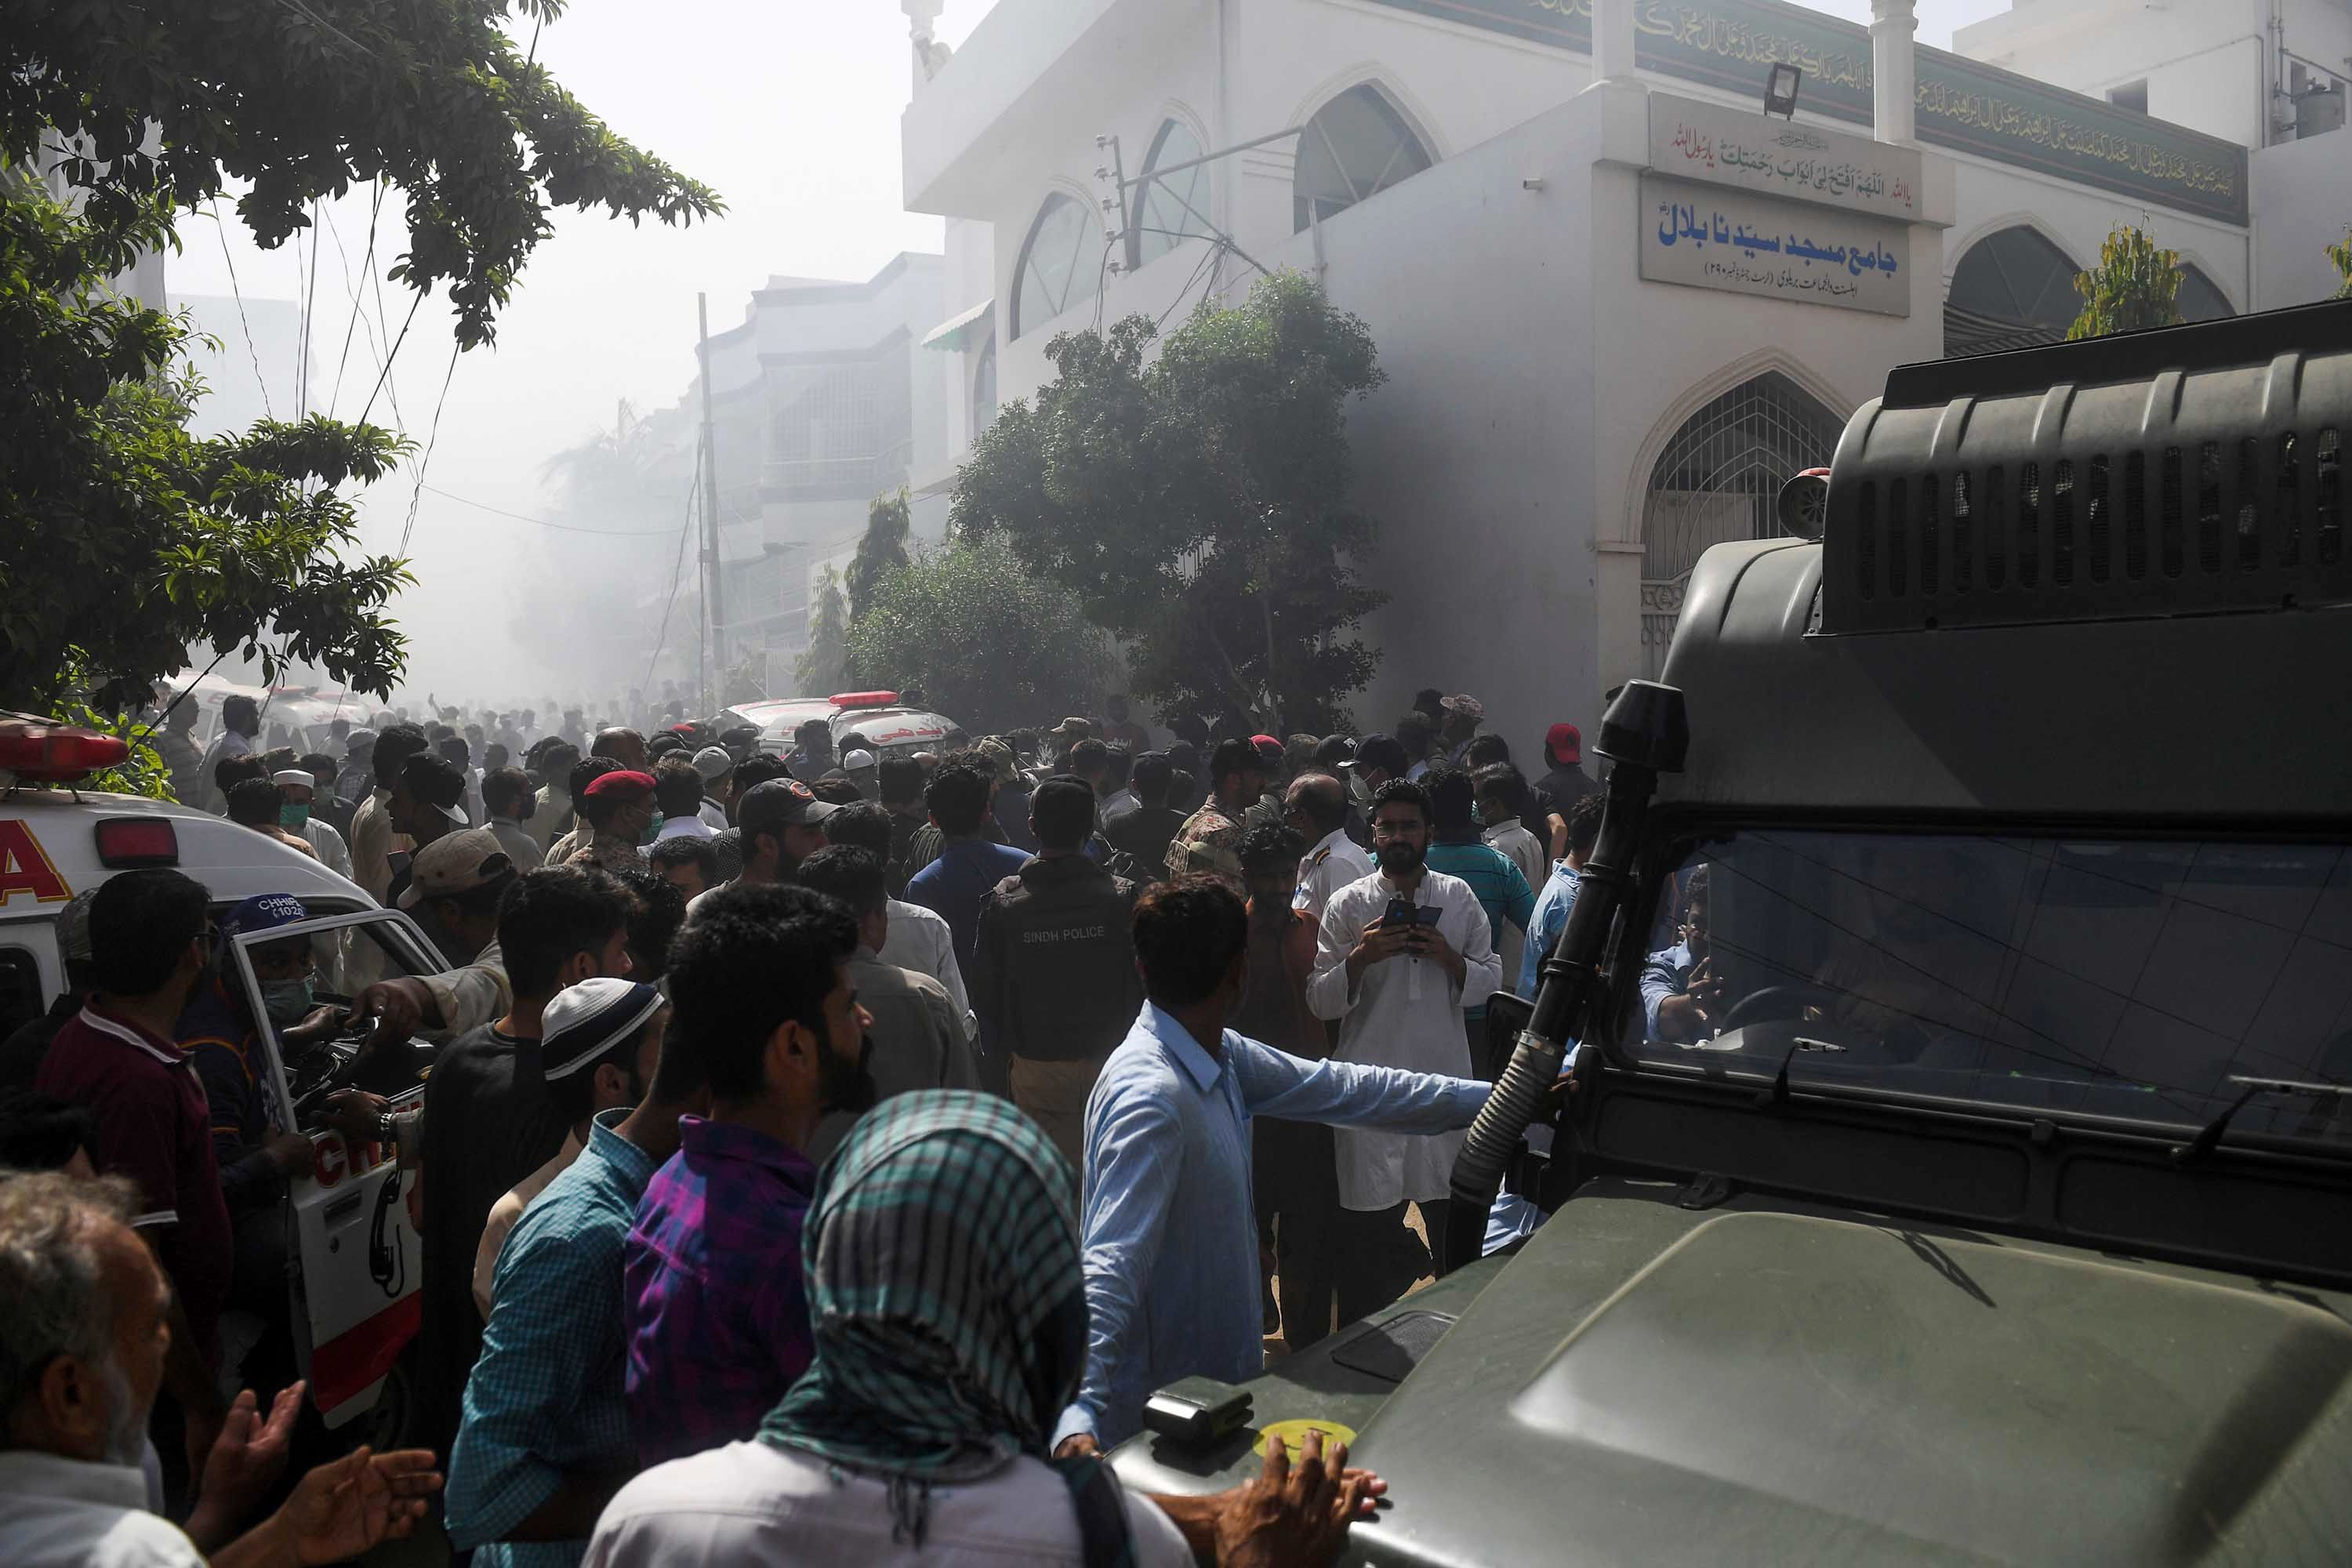 Rescue workers and onlookers gather near the site of the crash in a residential neighborhood in Karachi.